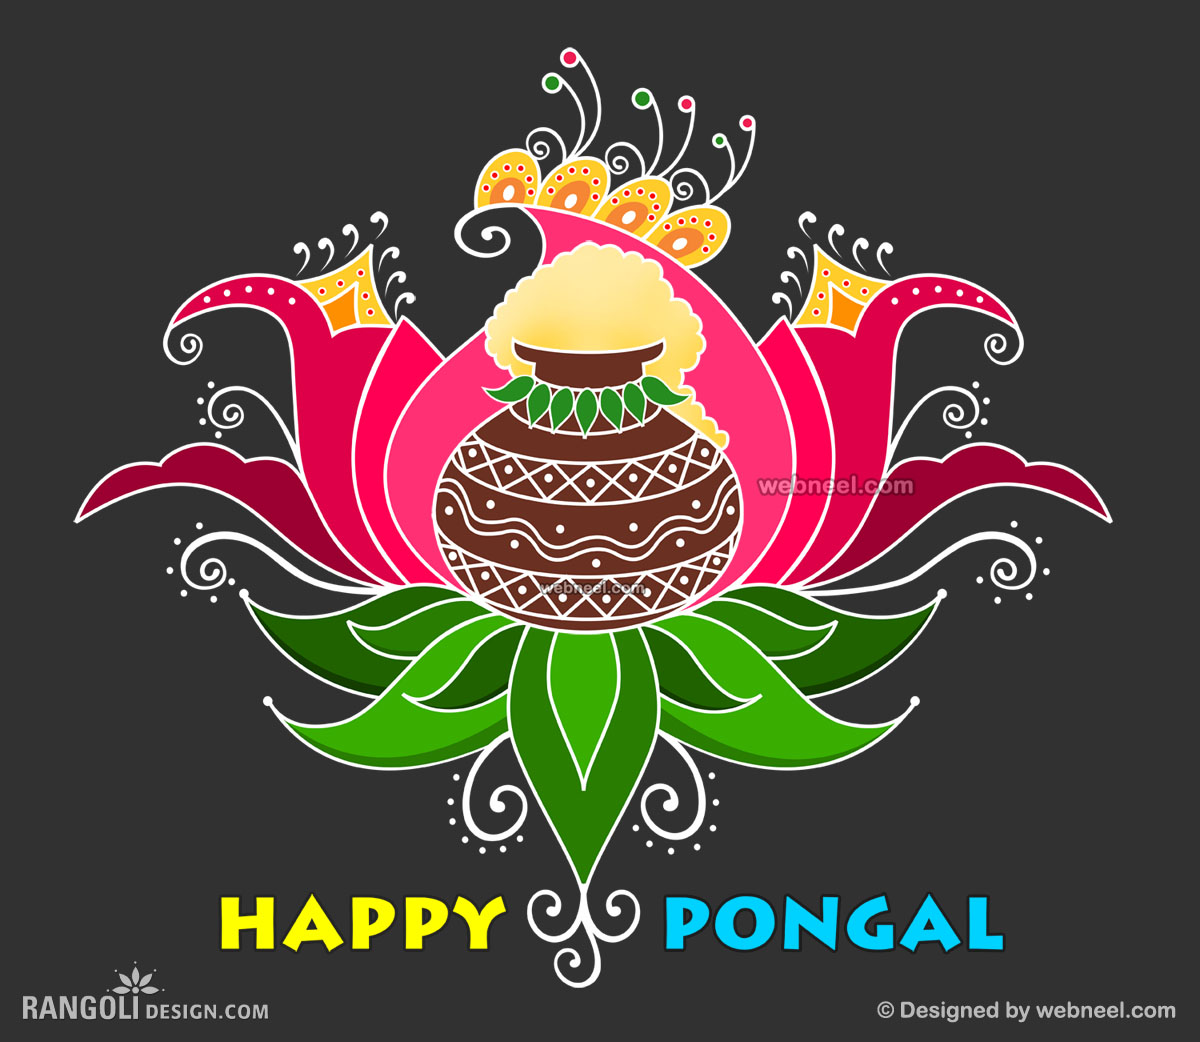 25 beautiful pongal greeting cards and design ideas in tamil pongal greetings card design by webneel pongal kolam design kristyandbryce Images